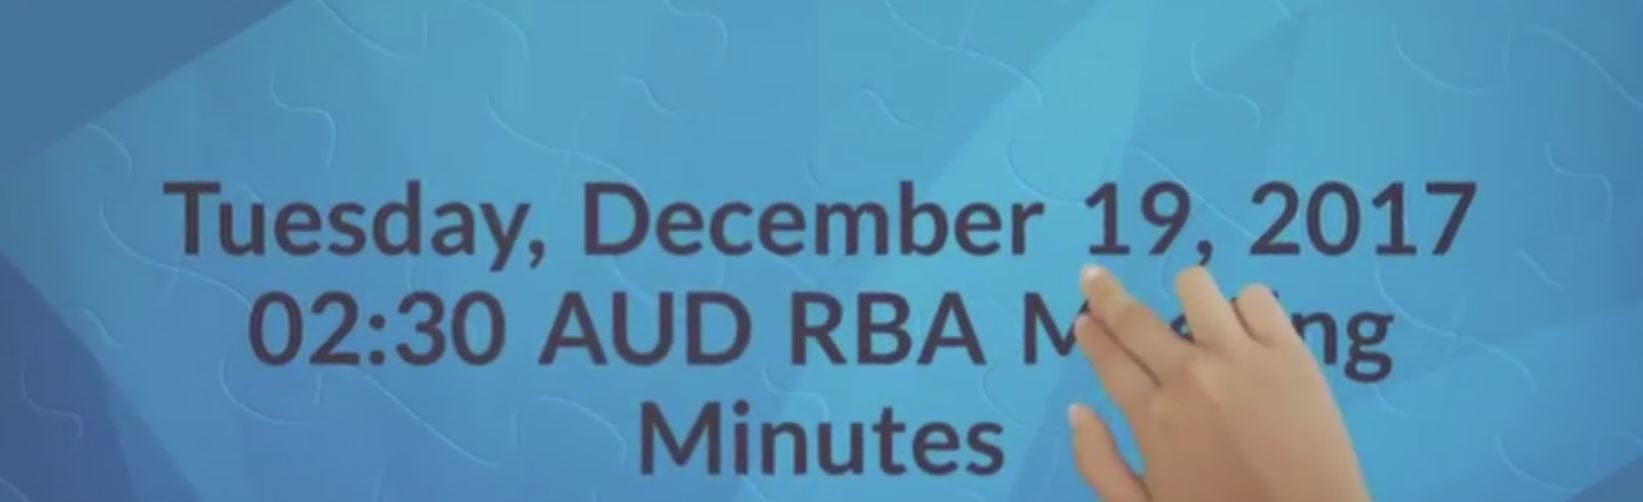 Winding down trading activity before the Christmas and New Year holidays